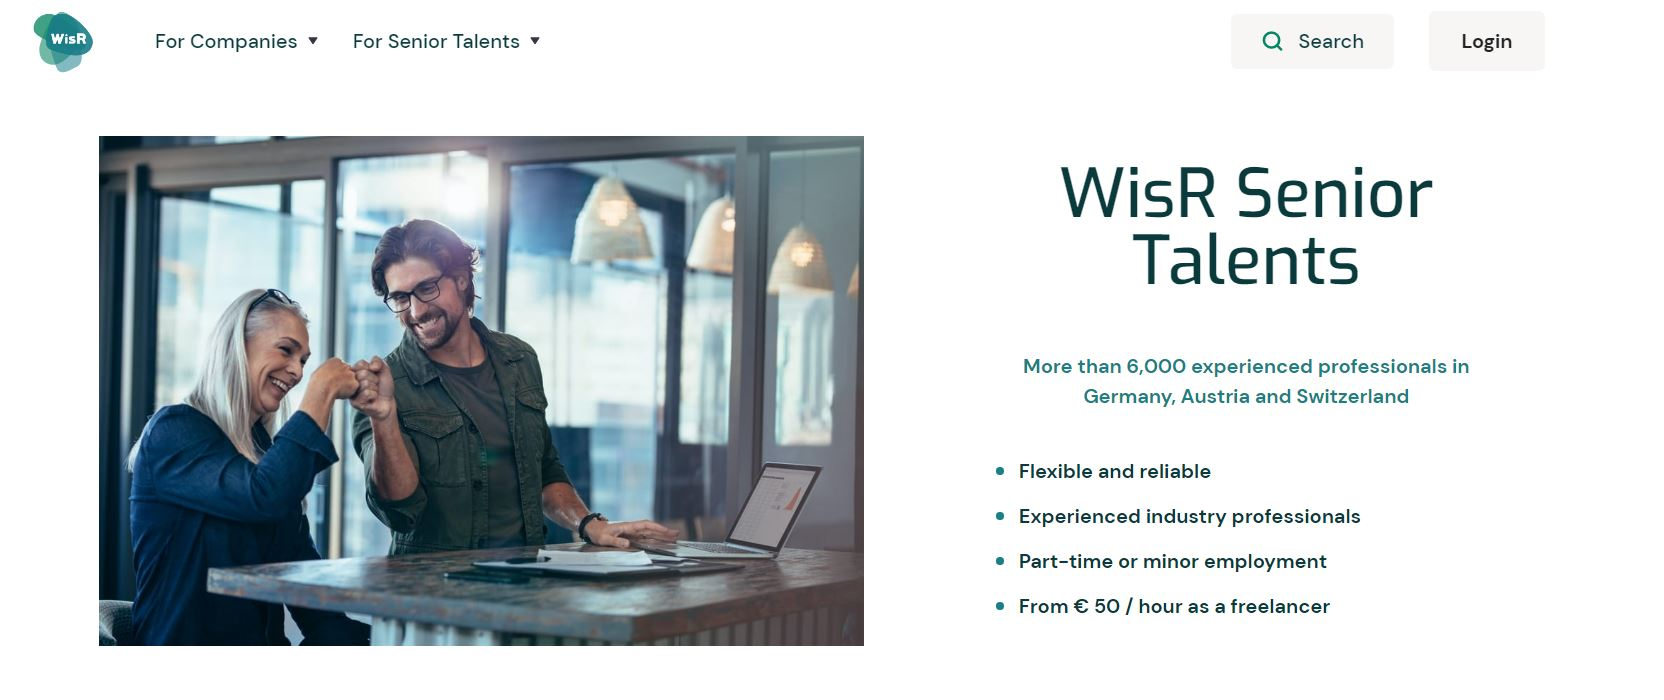 Relaunch: New Homepage with even more Benefits for Companies